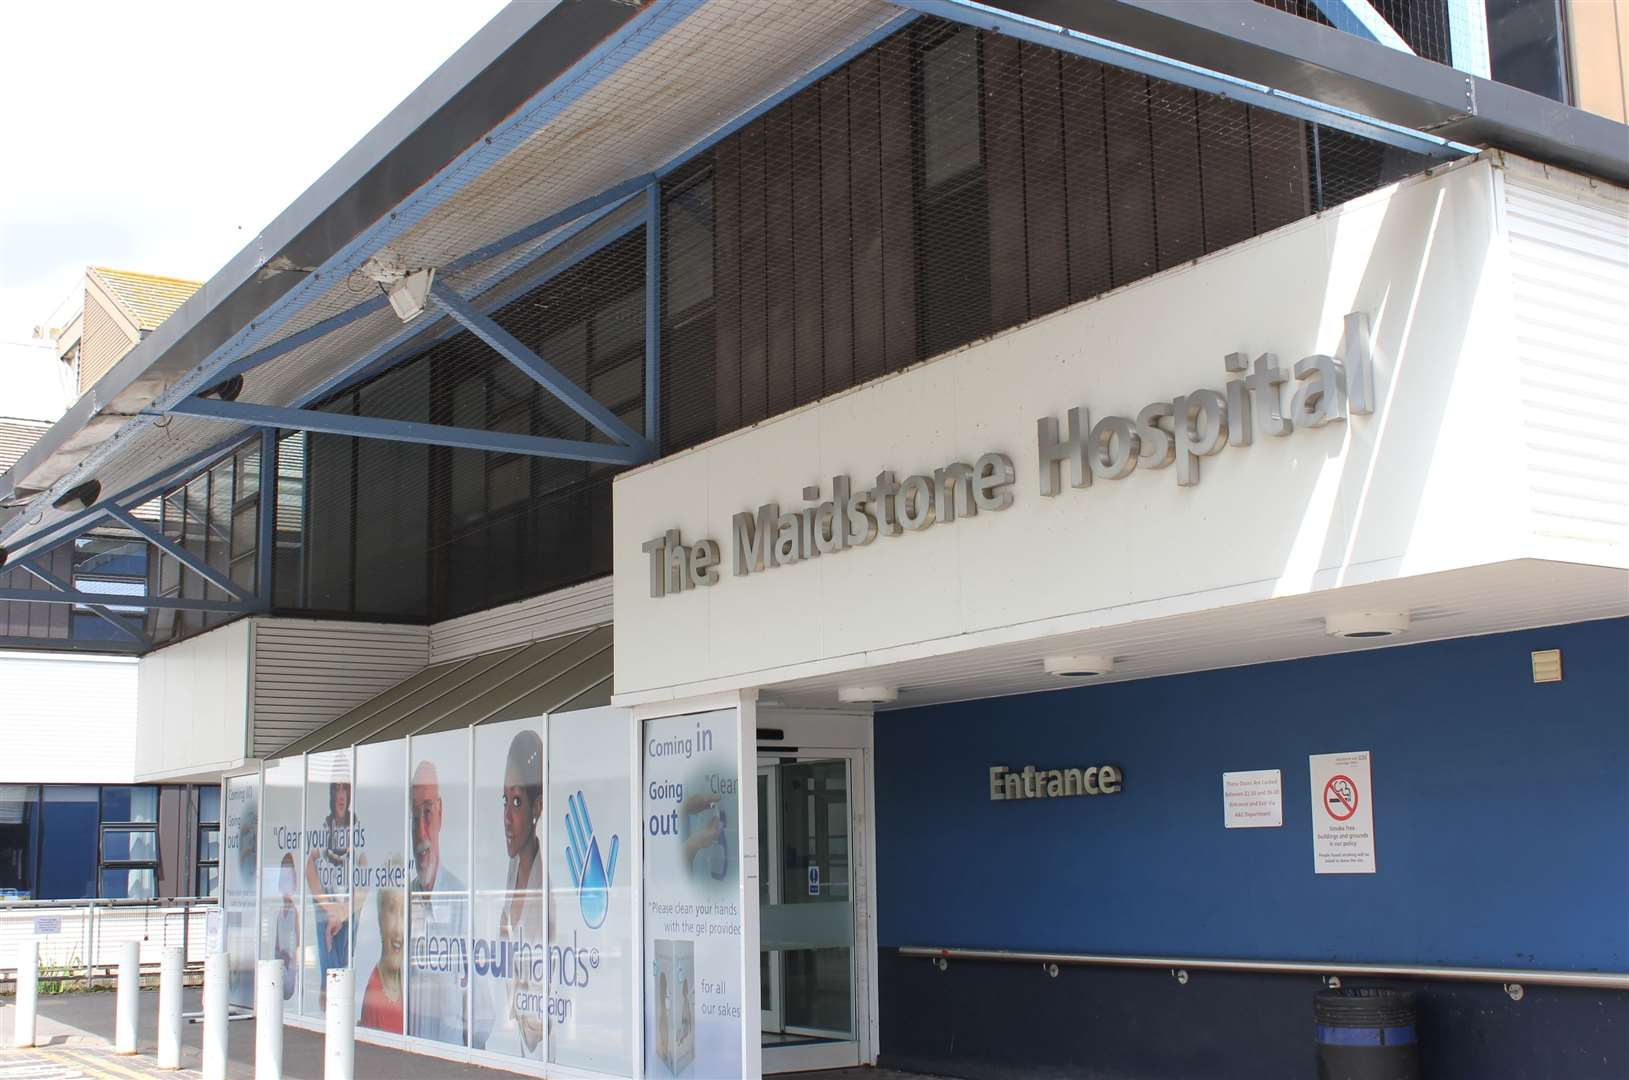 Maidstone Hospital has seen numbers of Covid patients fall dramatically